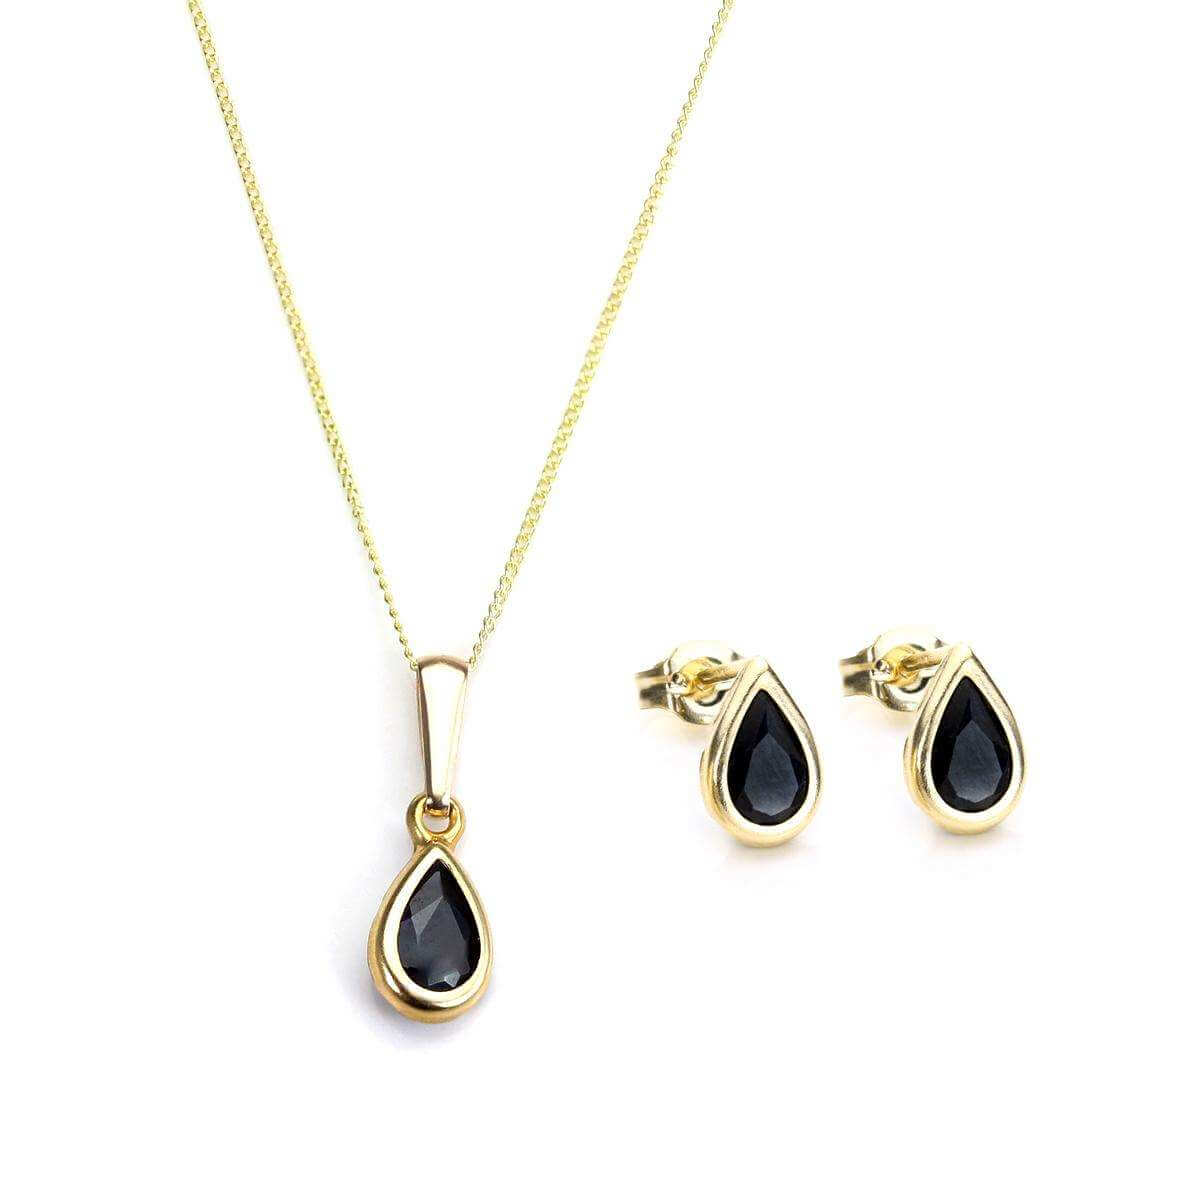 9ct Gold & September Birthstone Pendant & Stud Earrings Set